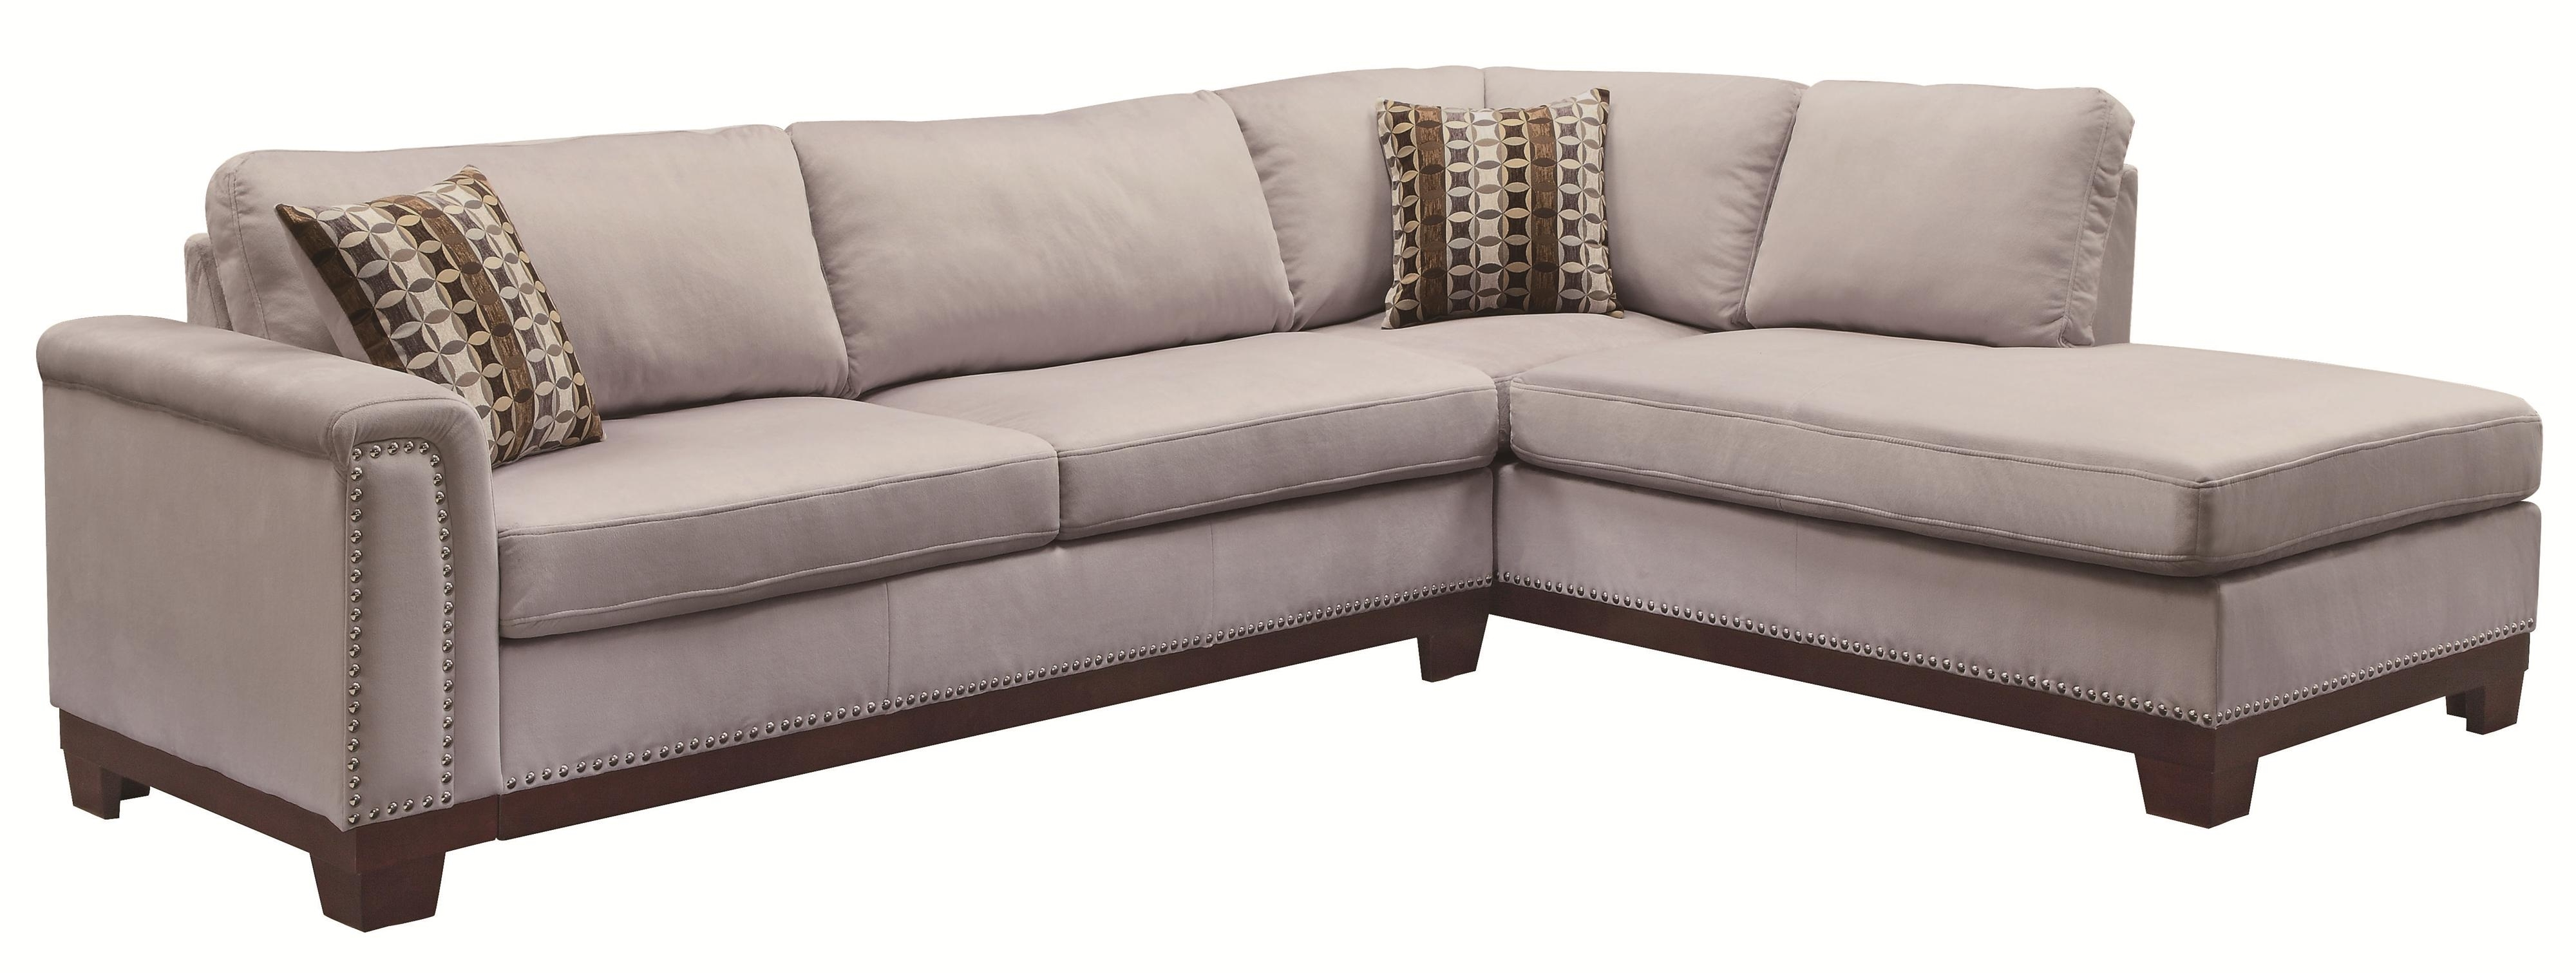 Value pertaining to Trendy Reversible Chaise Sectional Sofas